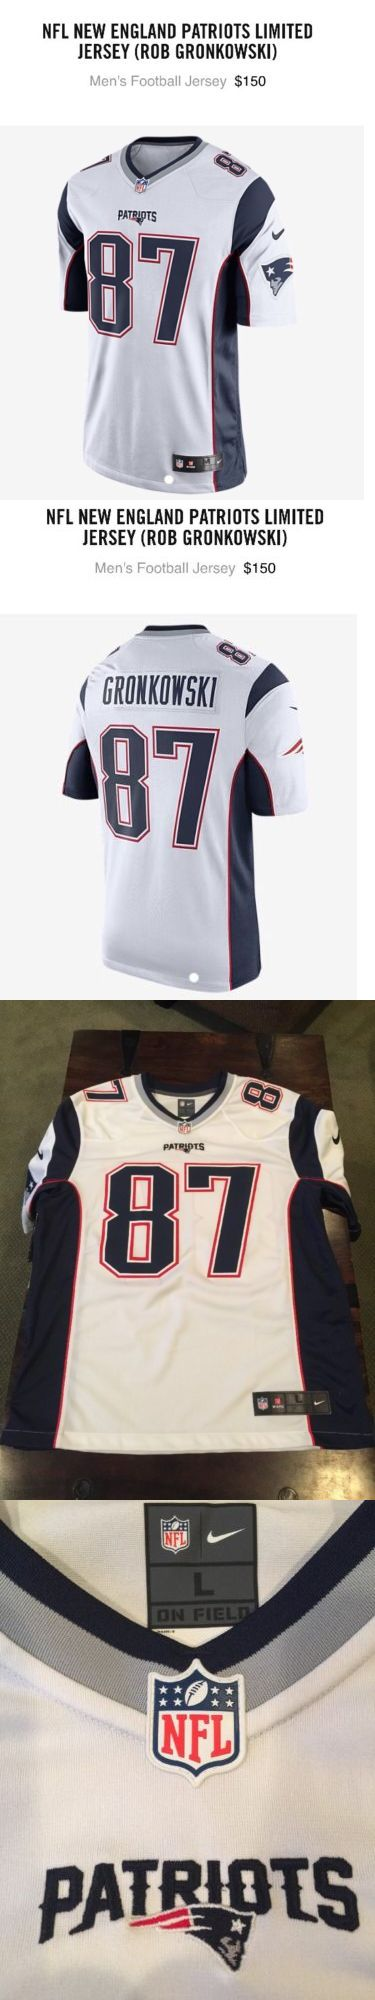 Men 159109: New England Patriots Nike Limited Jersey Rob Gronkowski Large # 87 White -> BUY IT NOW ONLY: $125 on eBay!